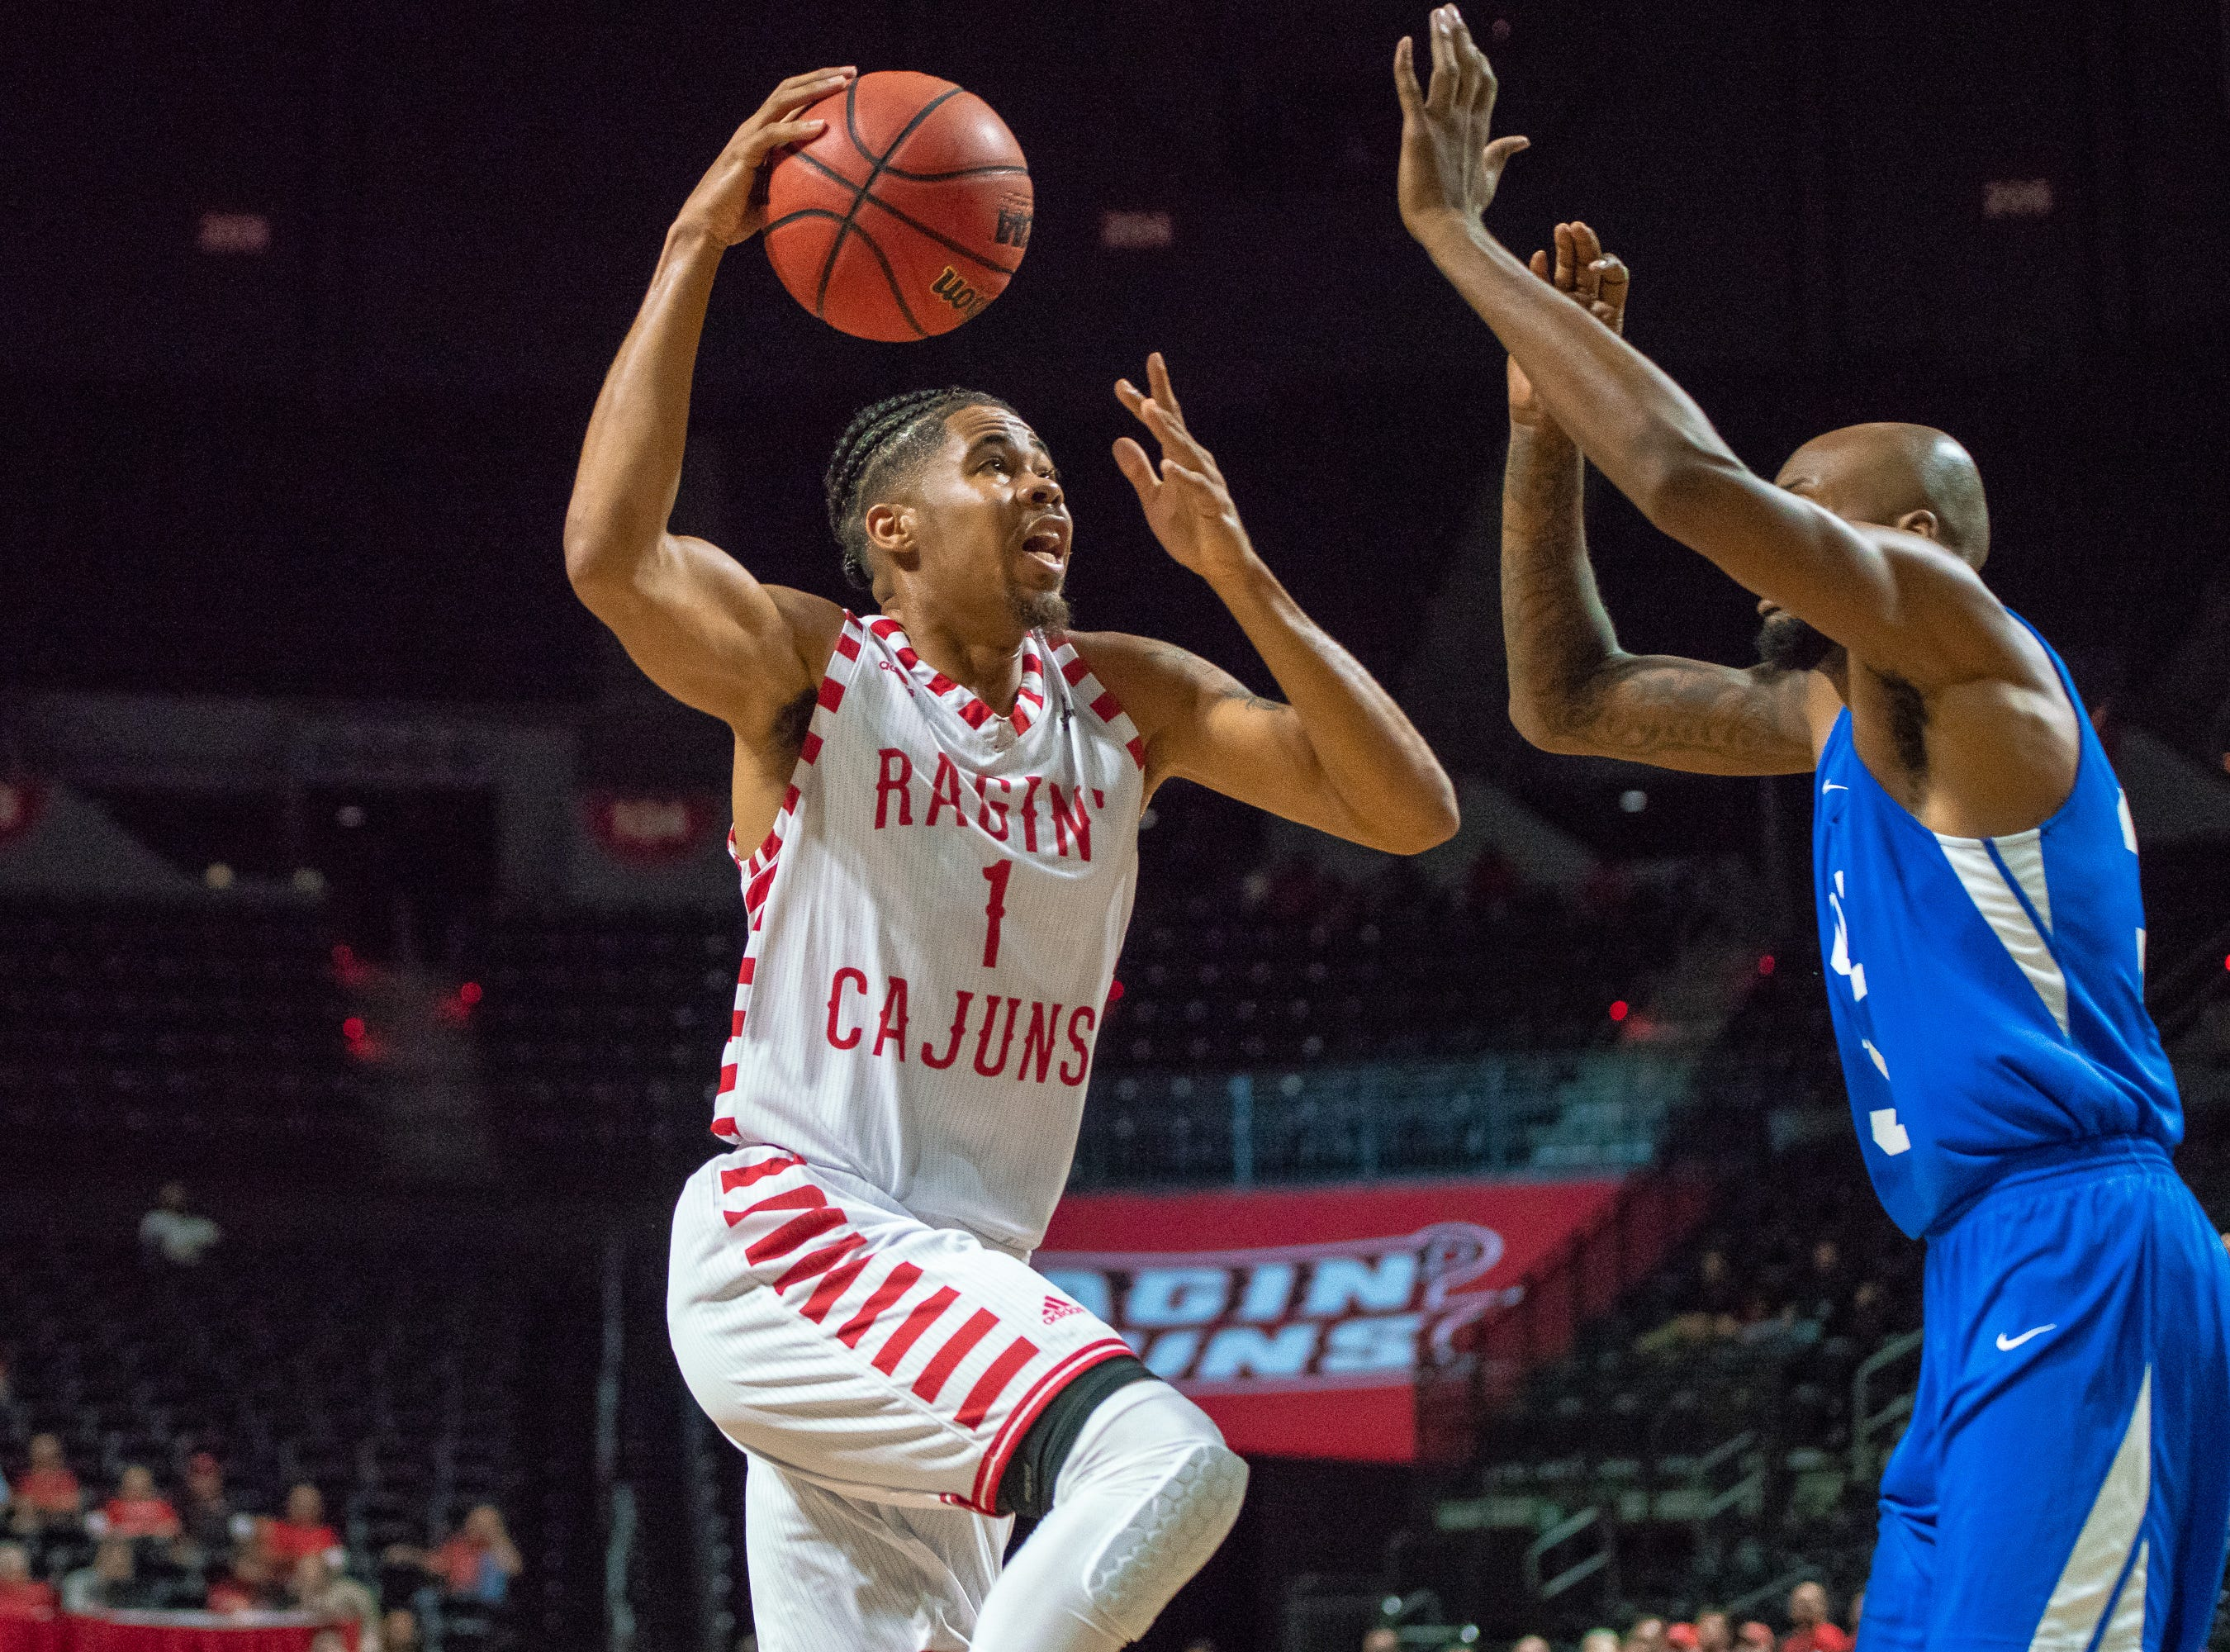 UL's Malik Marquetti goes up to the goal to score as the Ragin' Cajuns take on the University of the Virgin Islands Buccaneers at the Cajundome on Nov. 6, 2018.